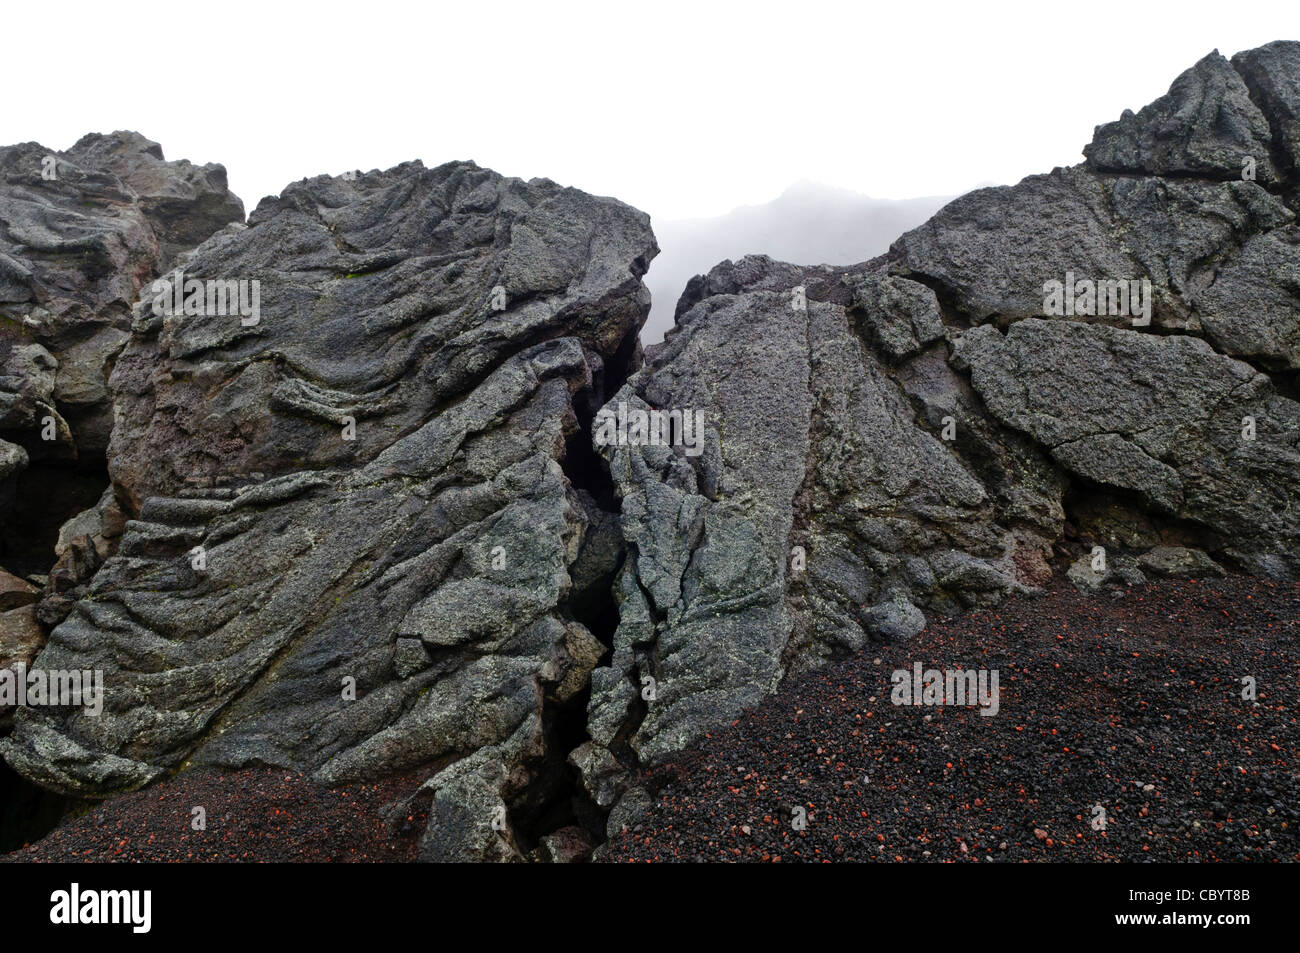 Some of the igneous rock from solidified lava flows at the summit of Pacaya Volcano. Pacaya is an active volcano - Stock Image